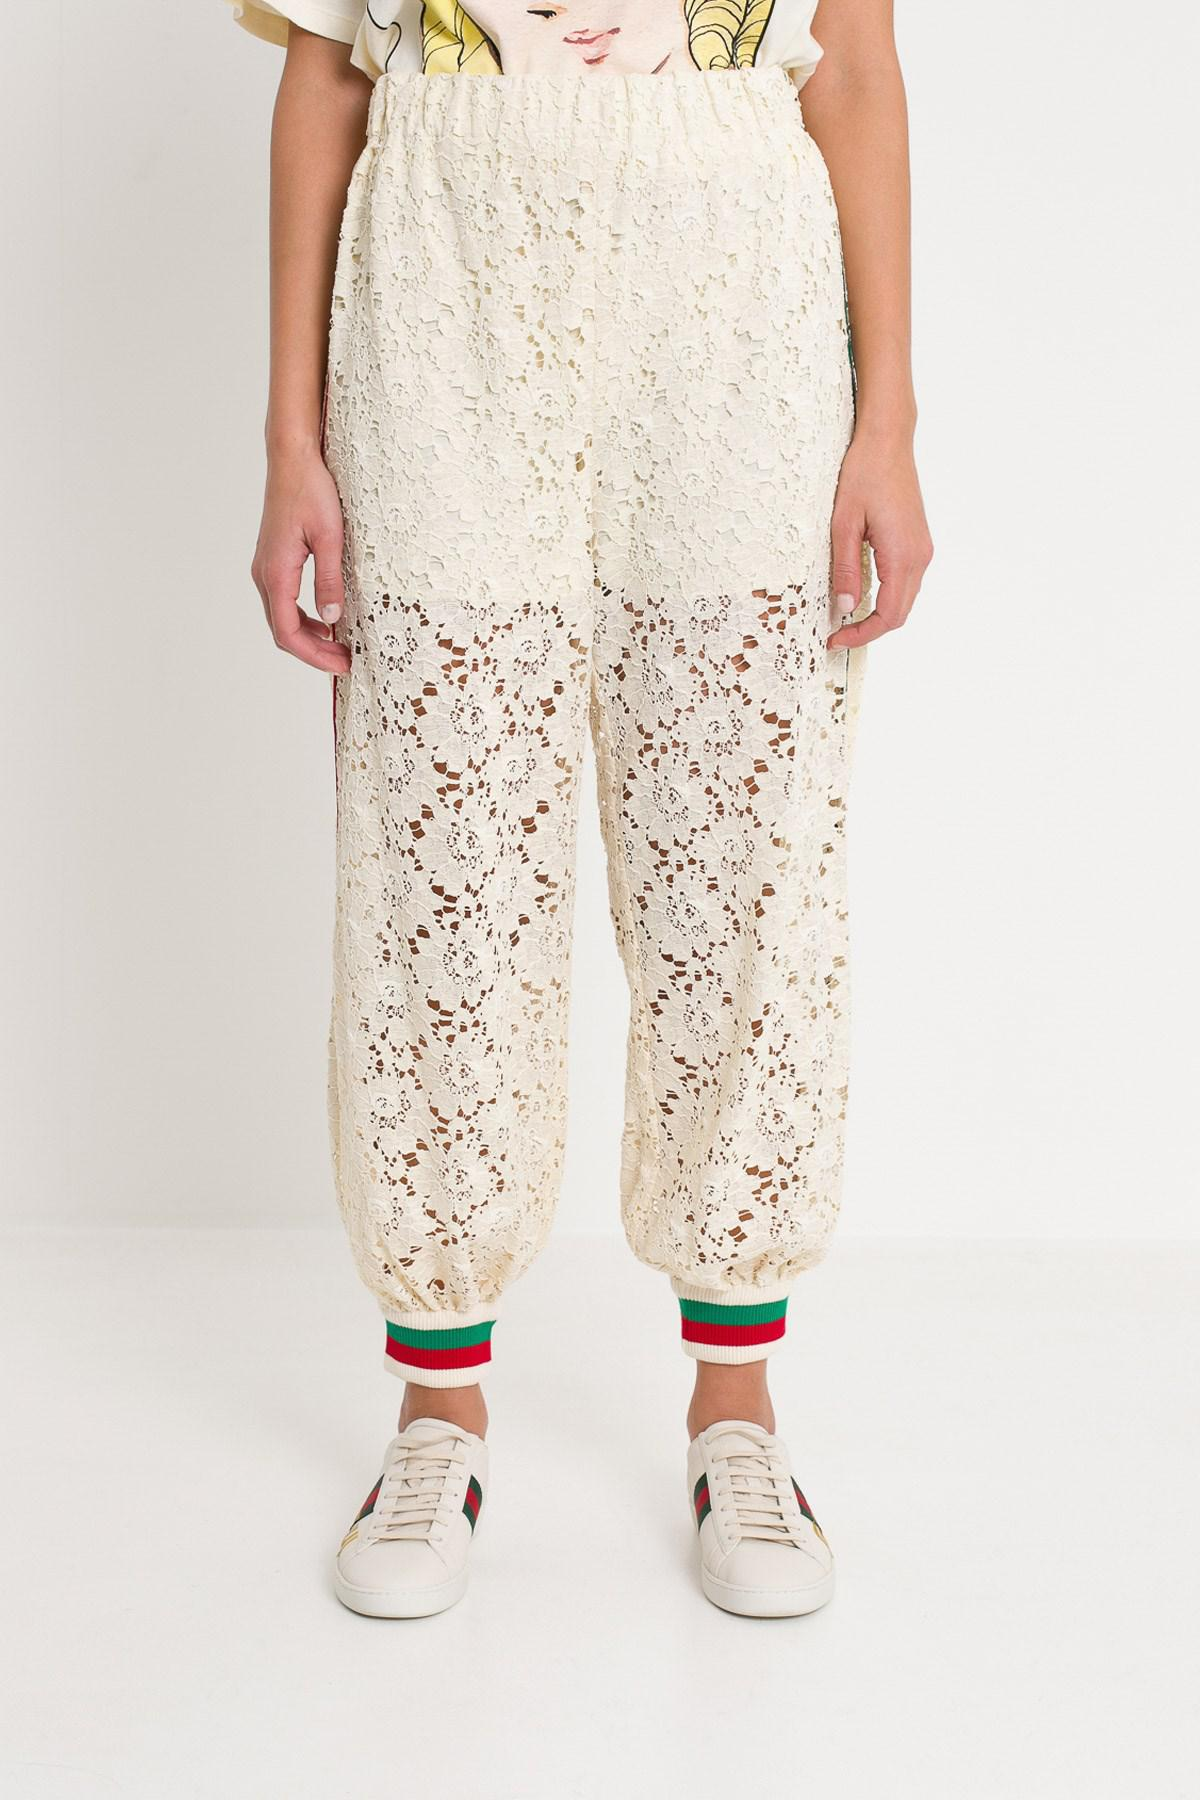 944df7b1fae2 Lyst - Gucci Flower Lace Jogging Pant in Natural